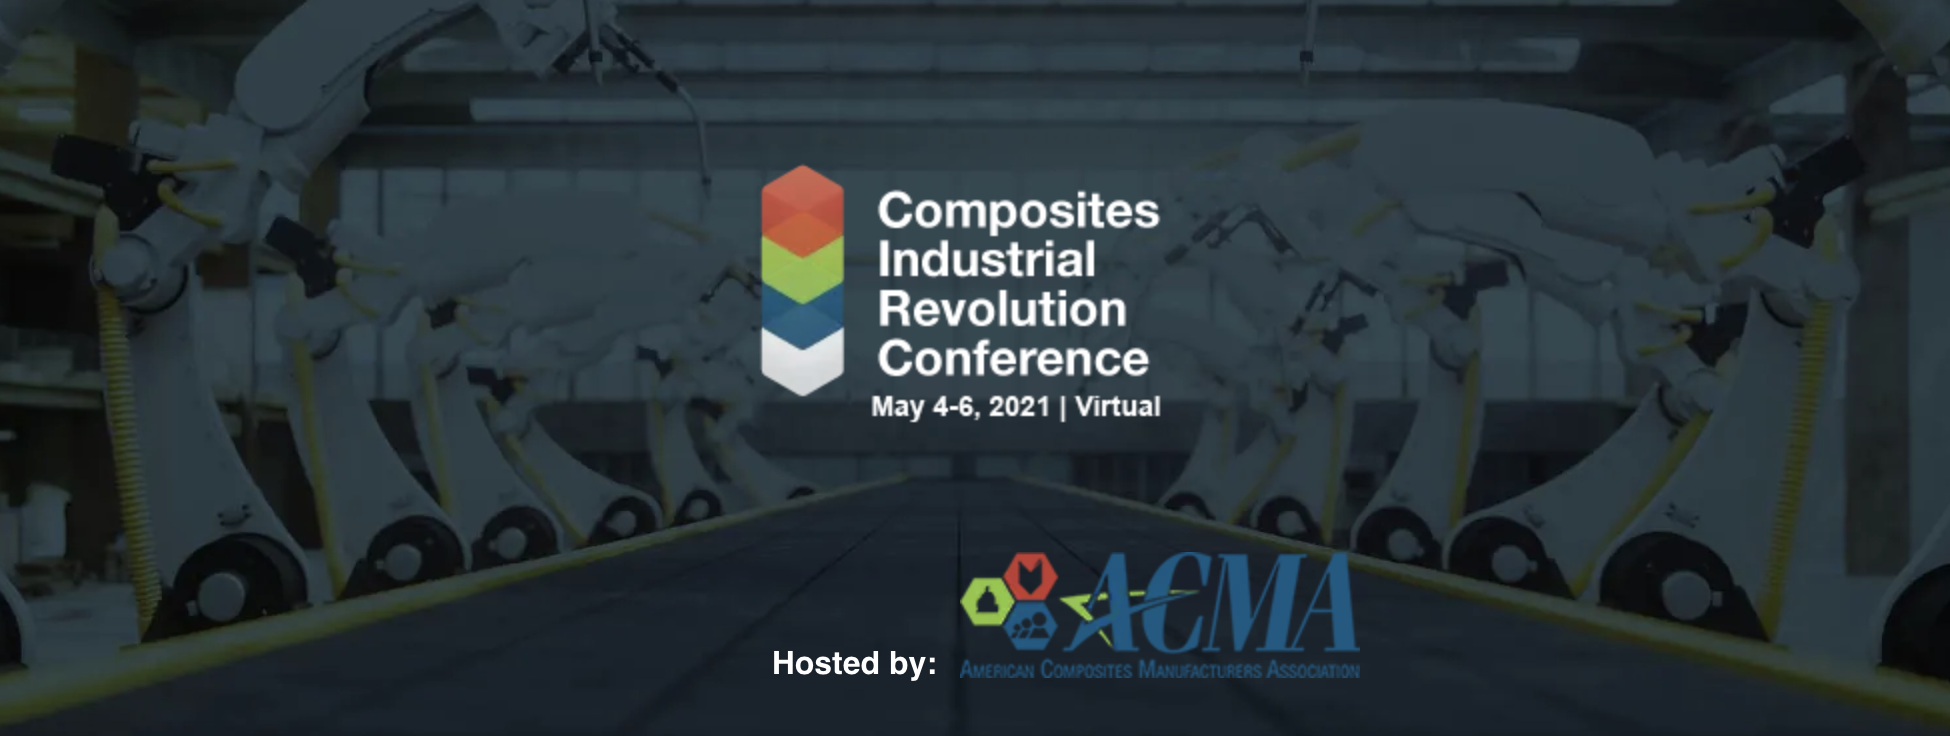 Composites Industrial Revolution Conference